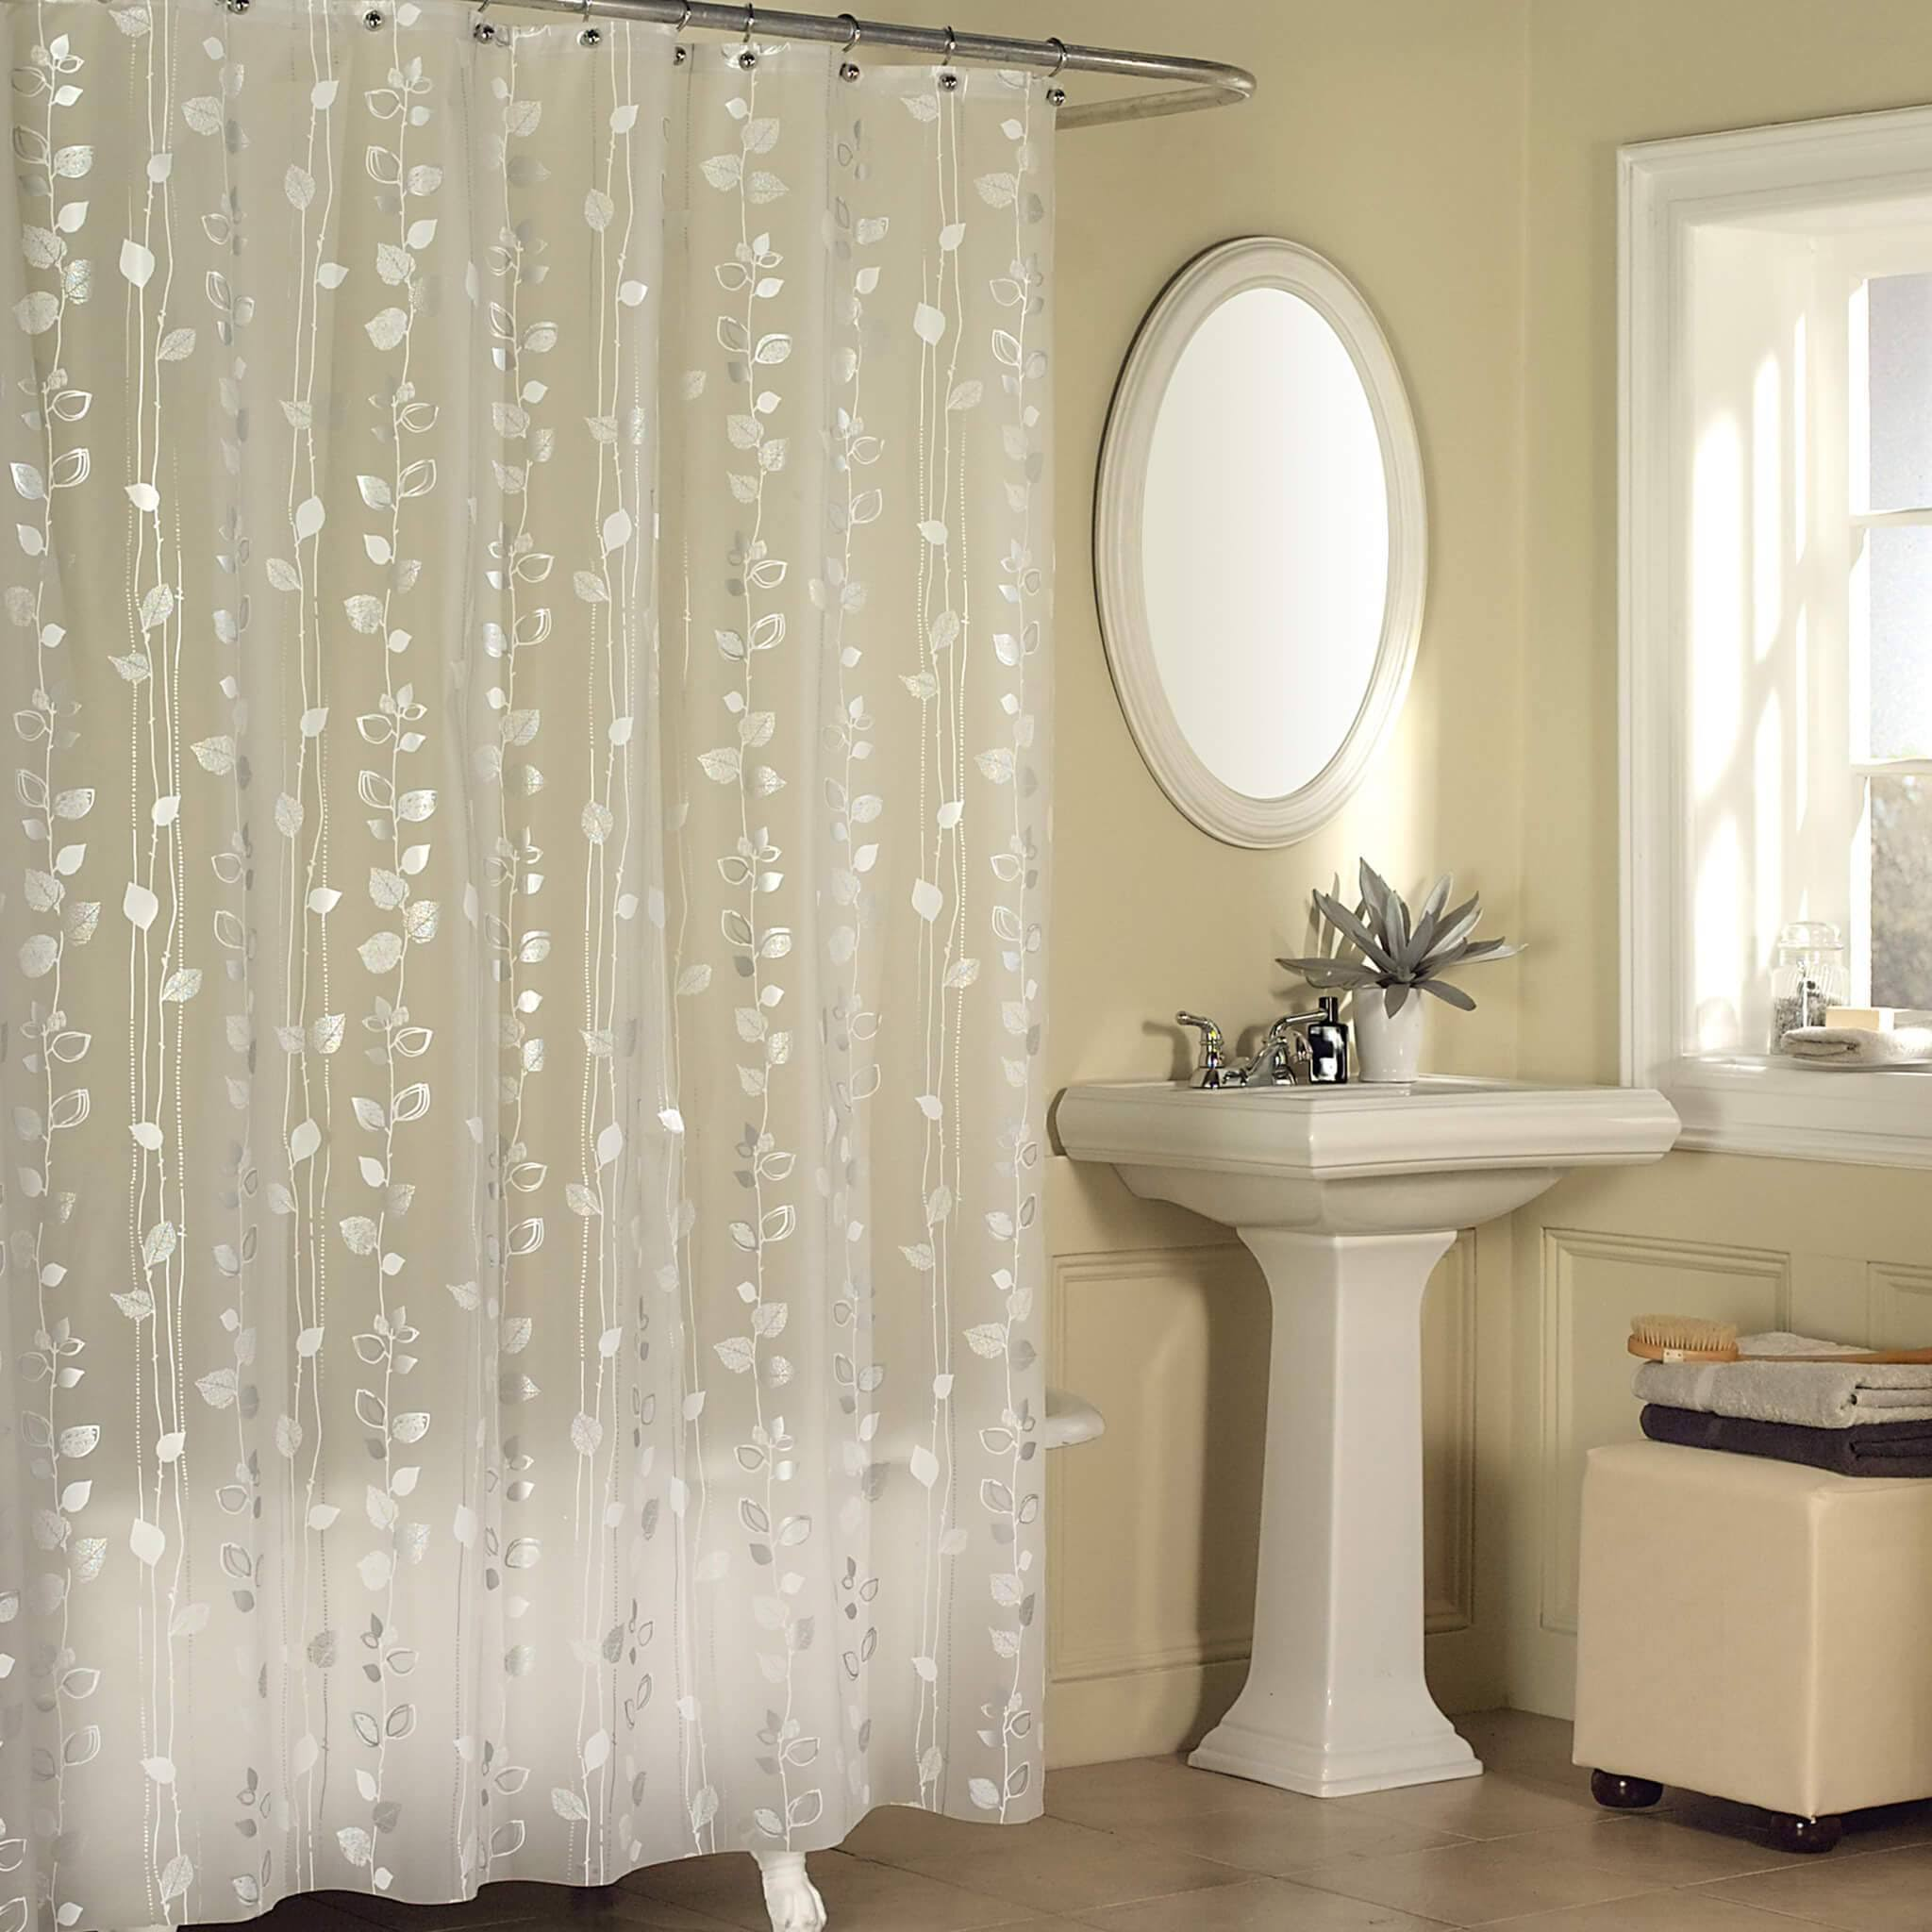 Ex-Cell Home Fashions Vinyl Ivy Shower Curtain, Silver